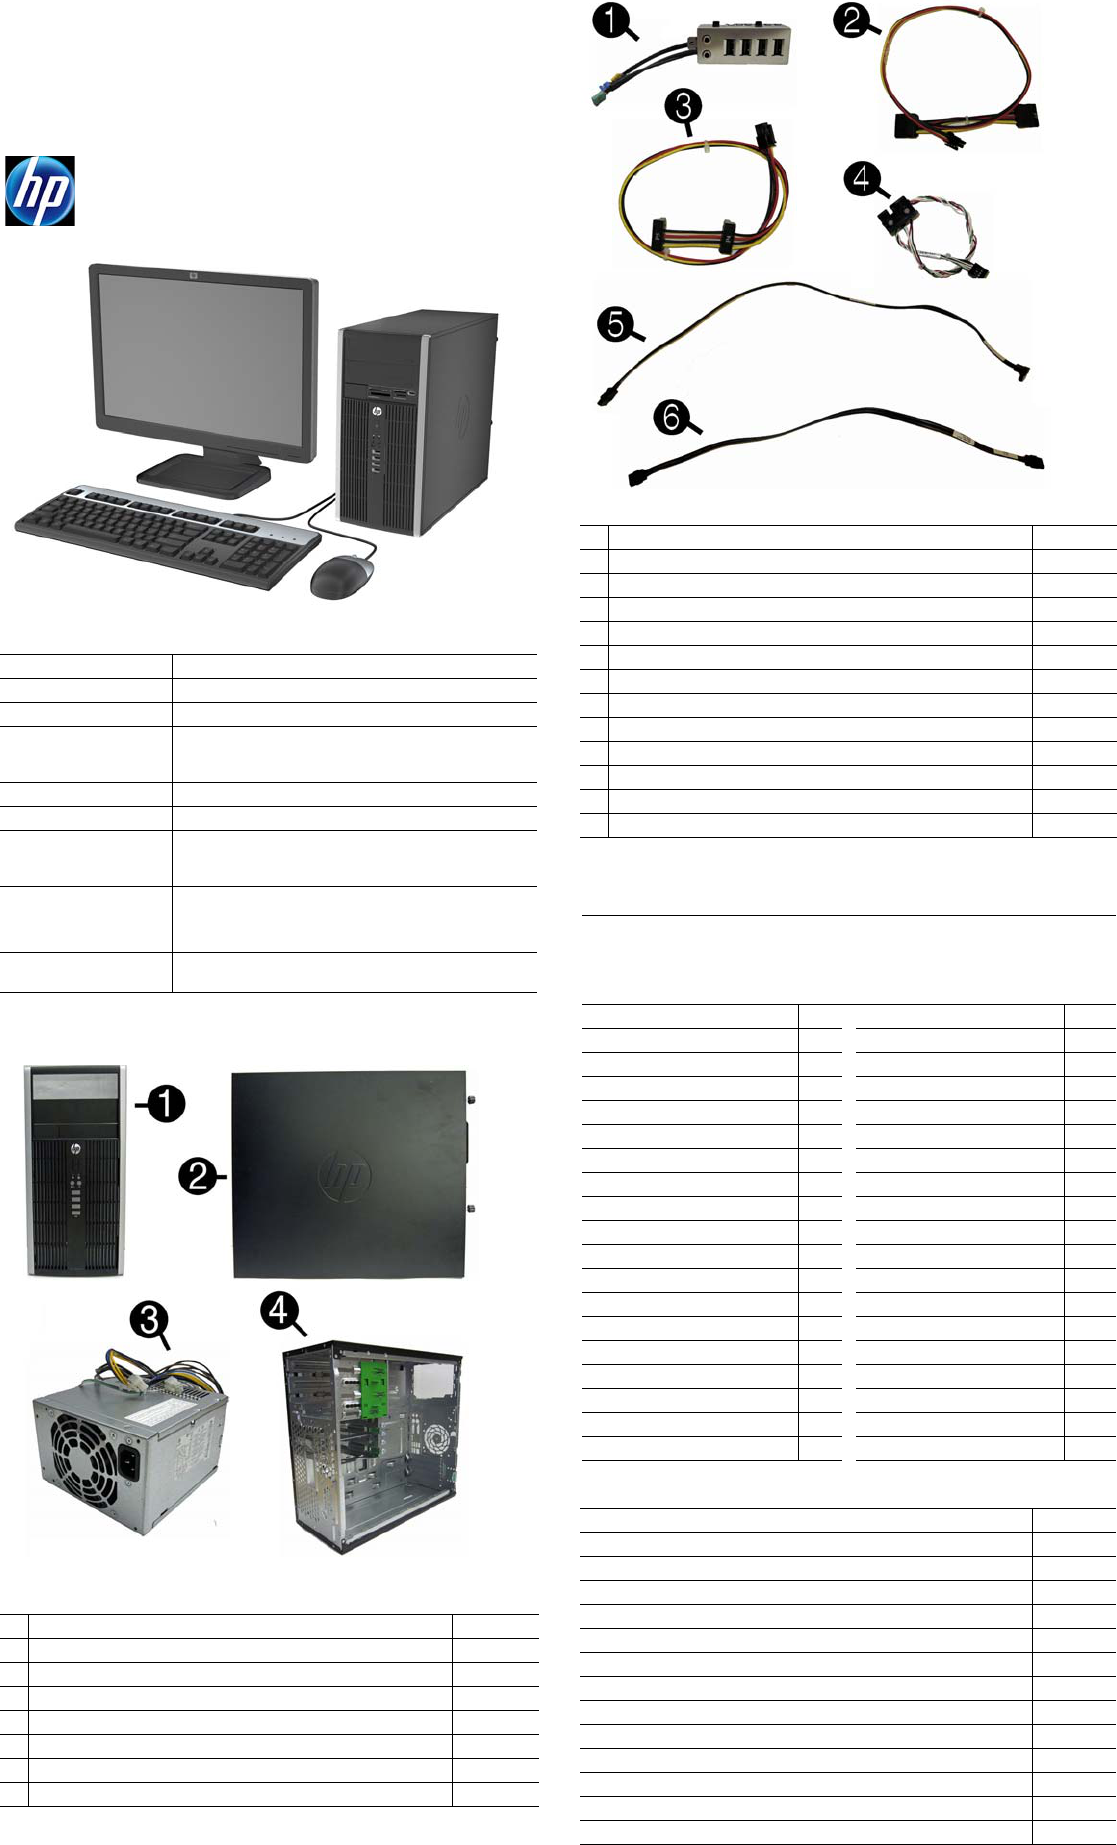 HP Compaq 6300 Pro, MT 690363-001 Illustrated Parts & Service Map